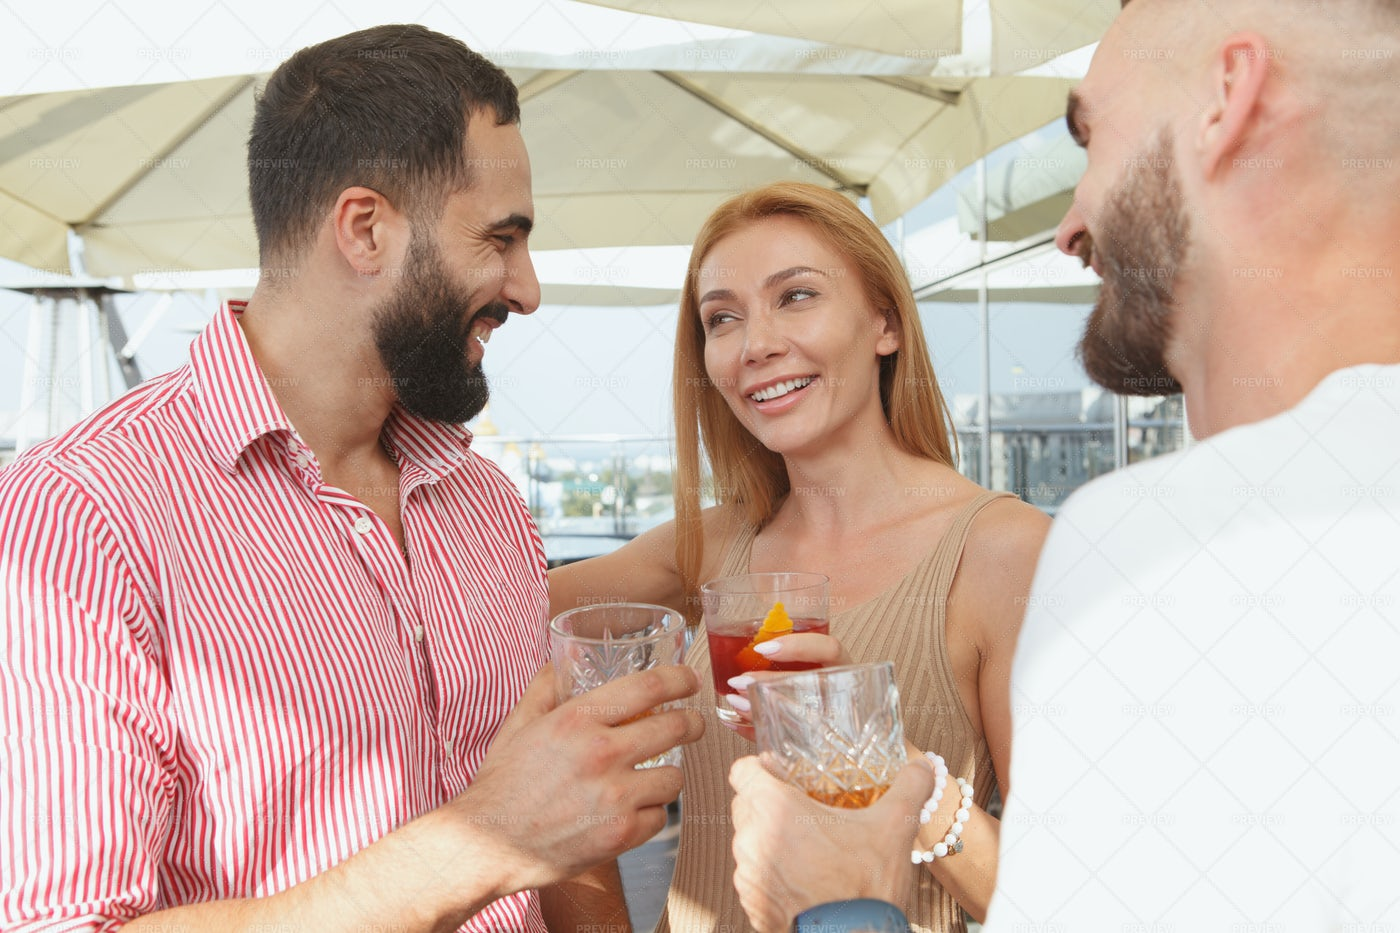 Friends Drinking On A Rooftop Bar: Stock Photos